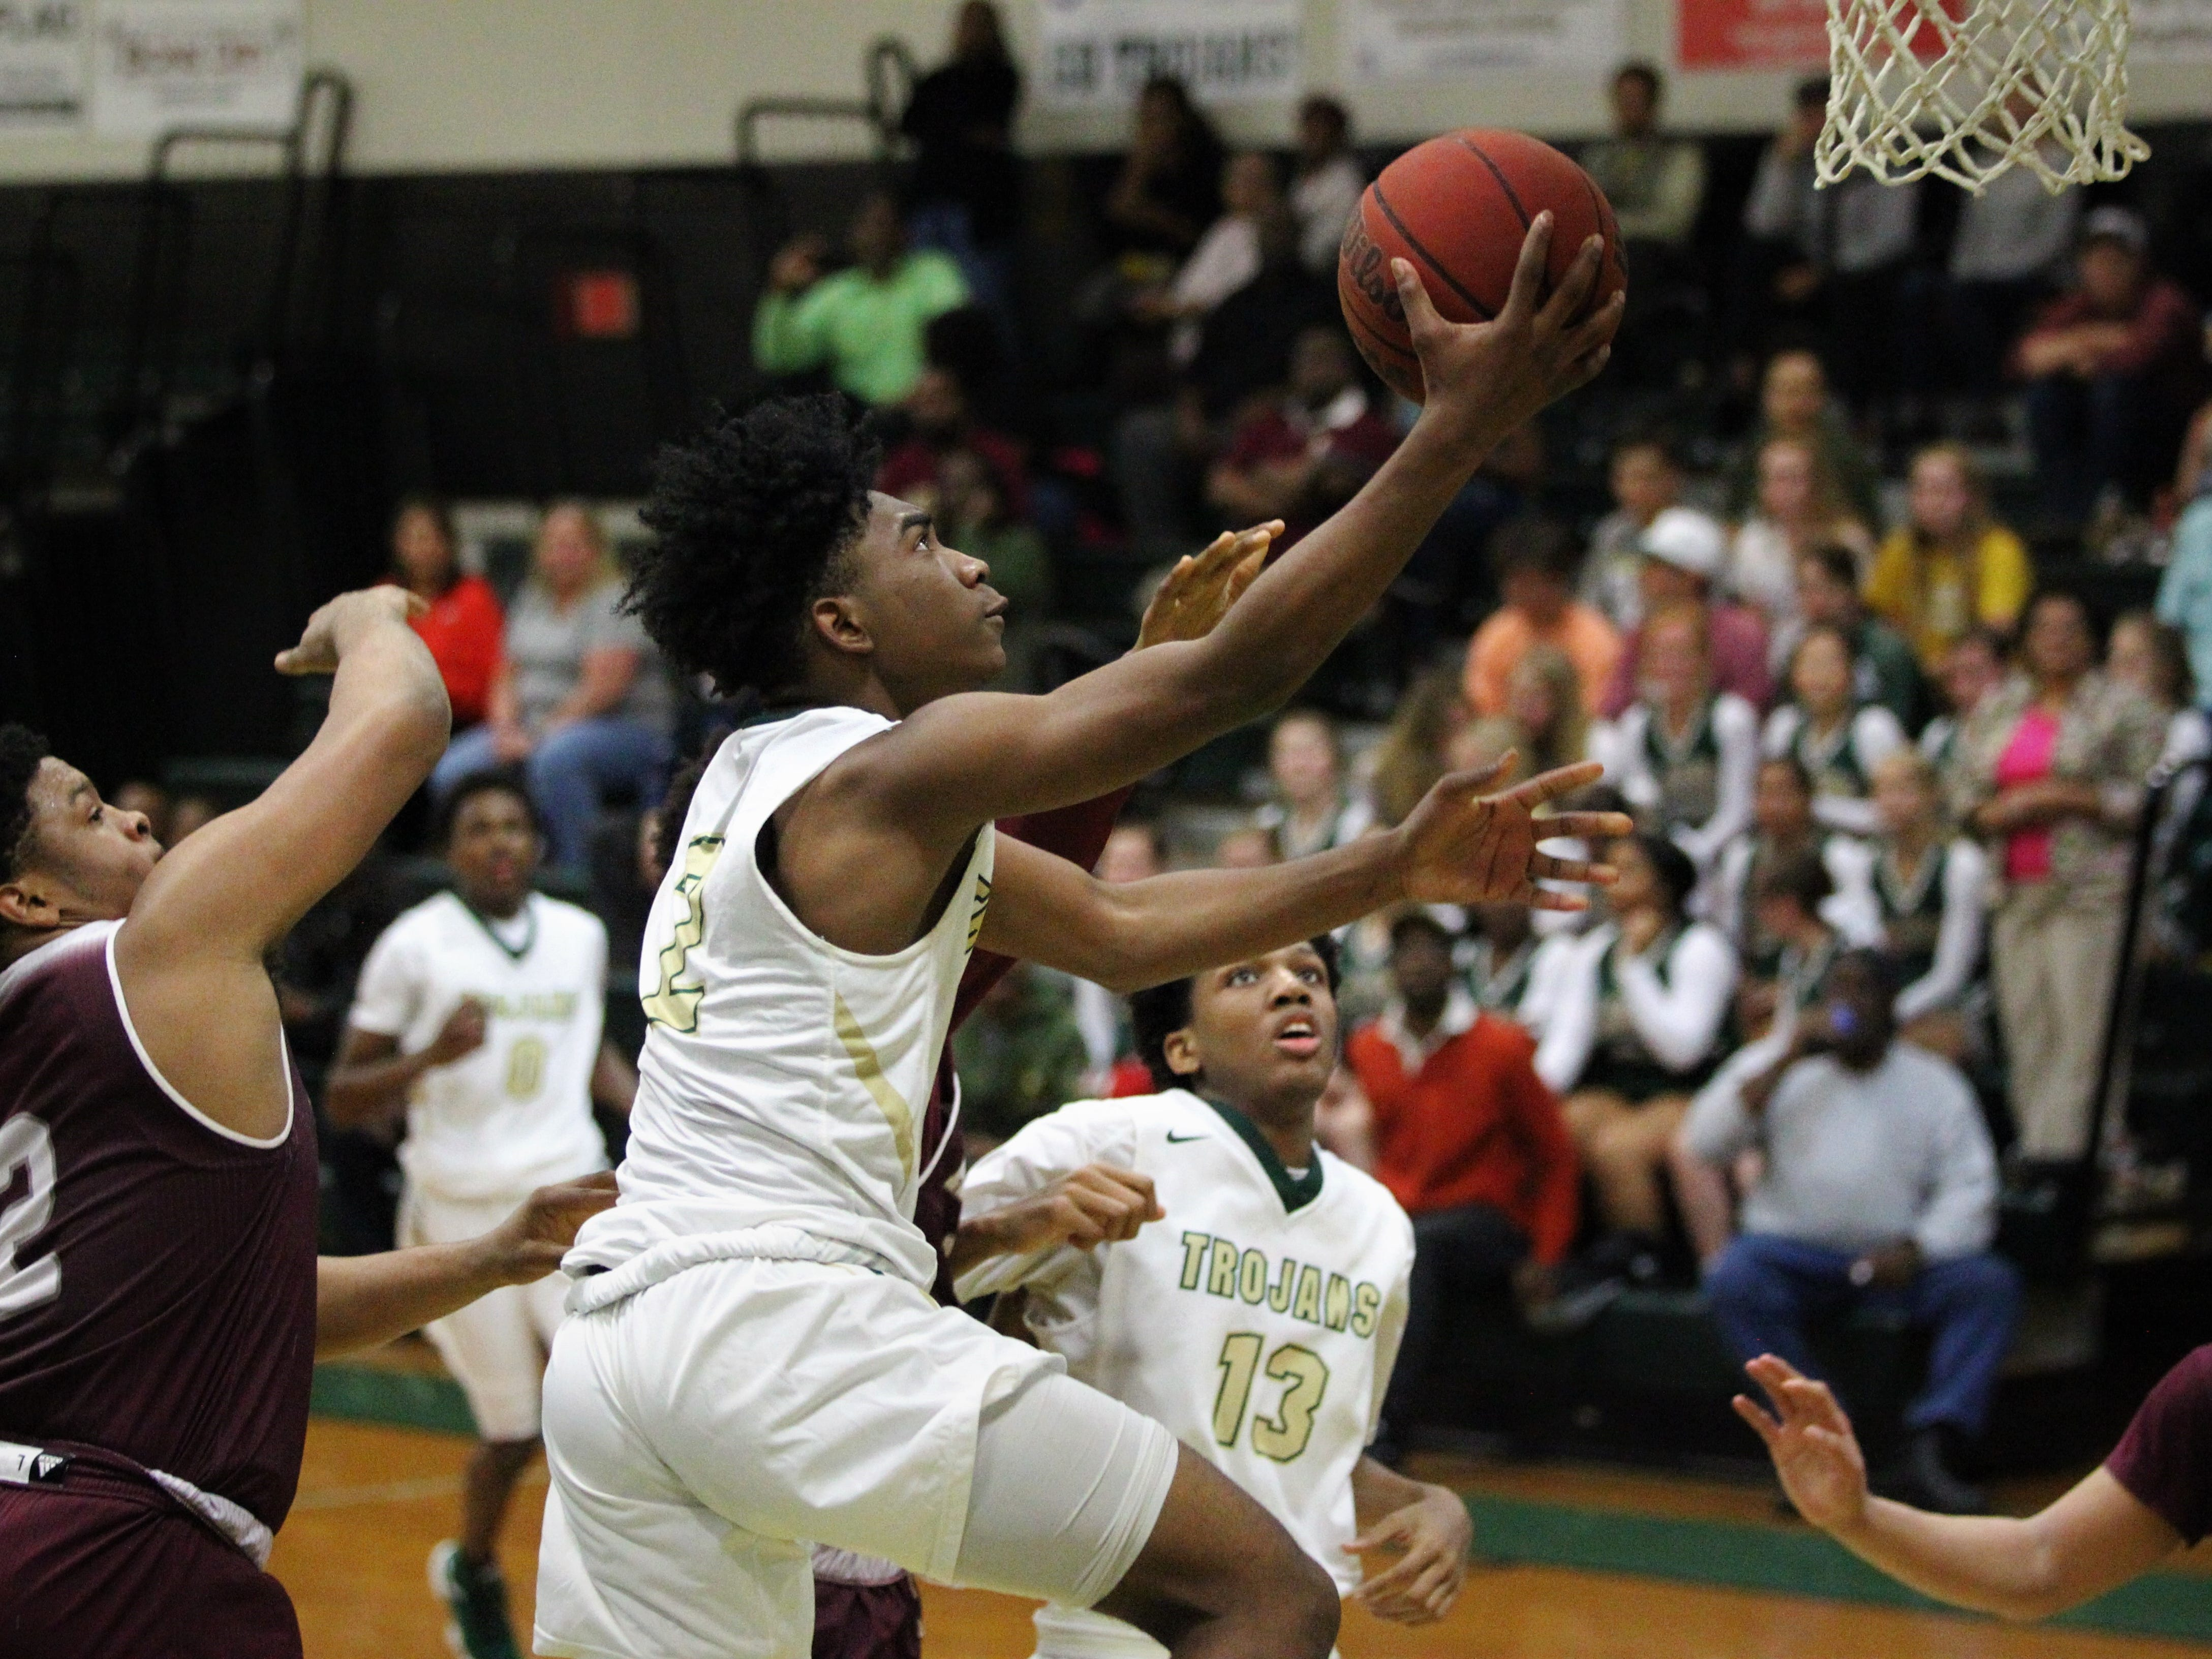 Lincoln's Zae Wiggins drives for a layup as the Trojans beat Tate 74-41 in a Region 1-8A semifinal on Feb. 26, 2019.